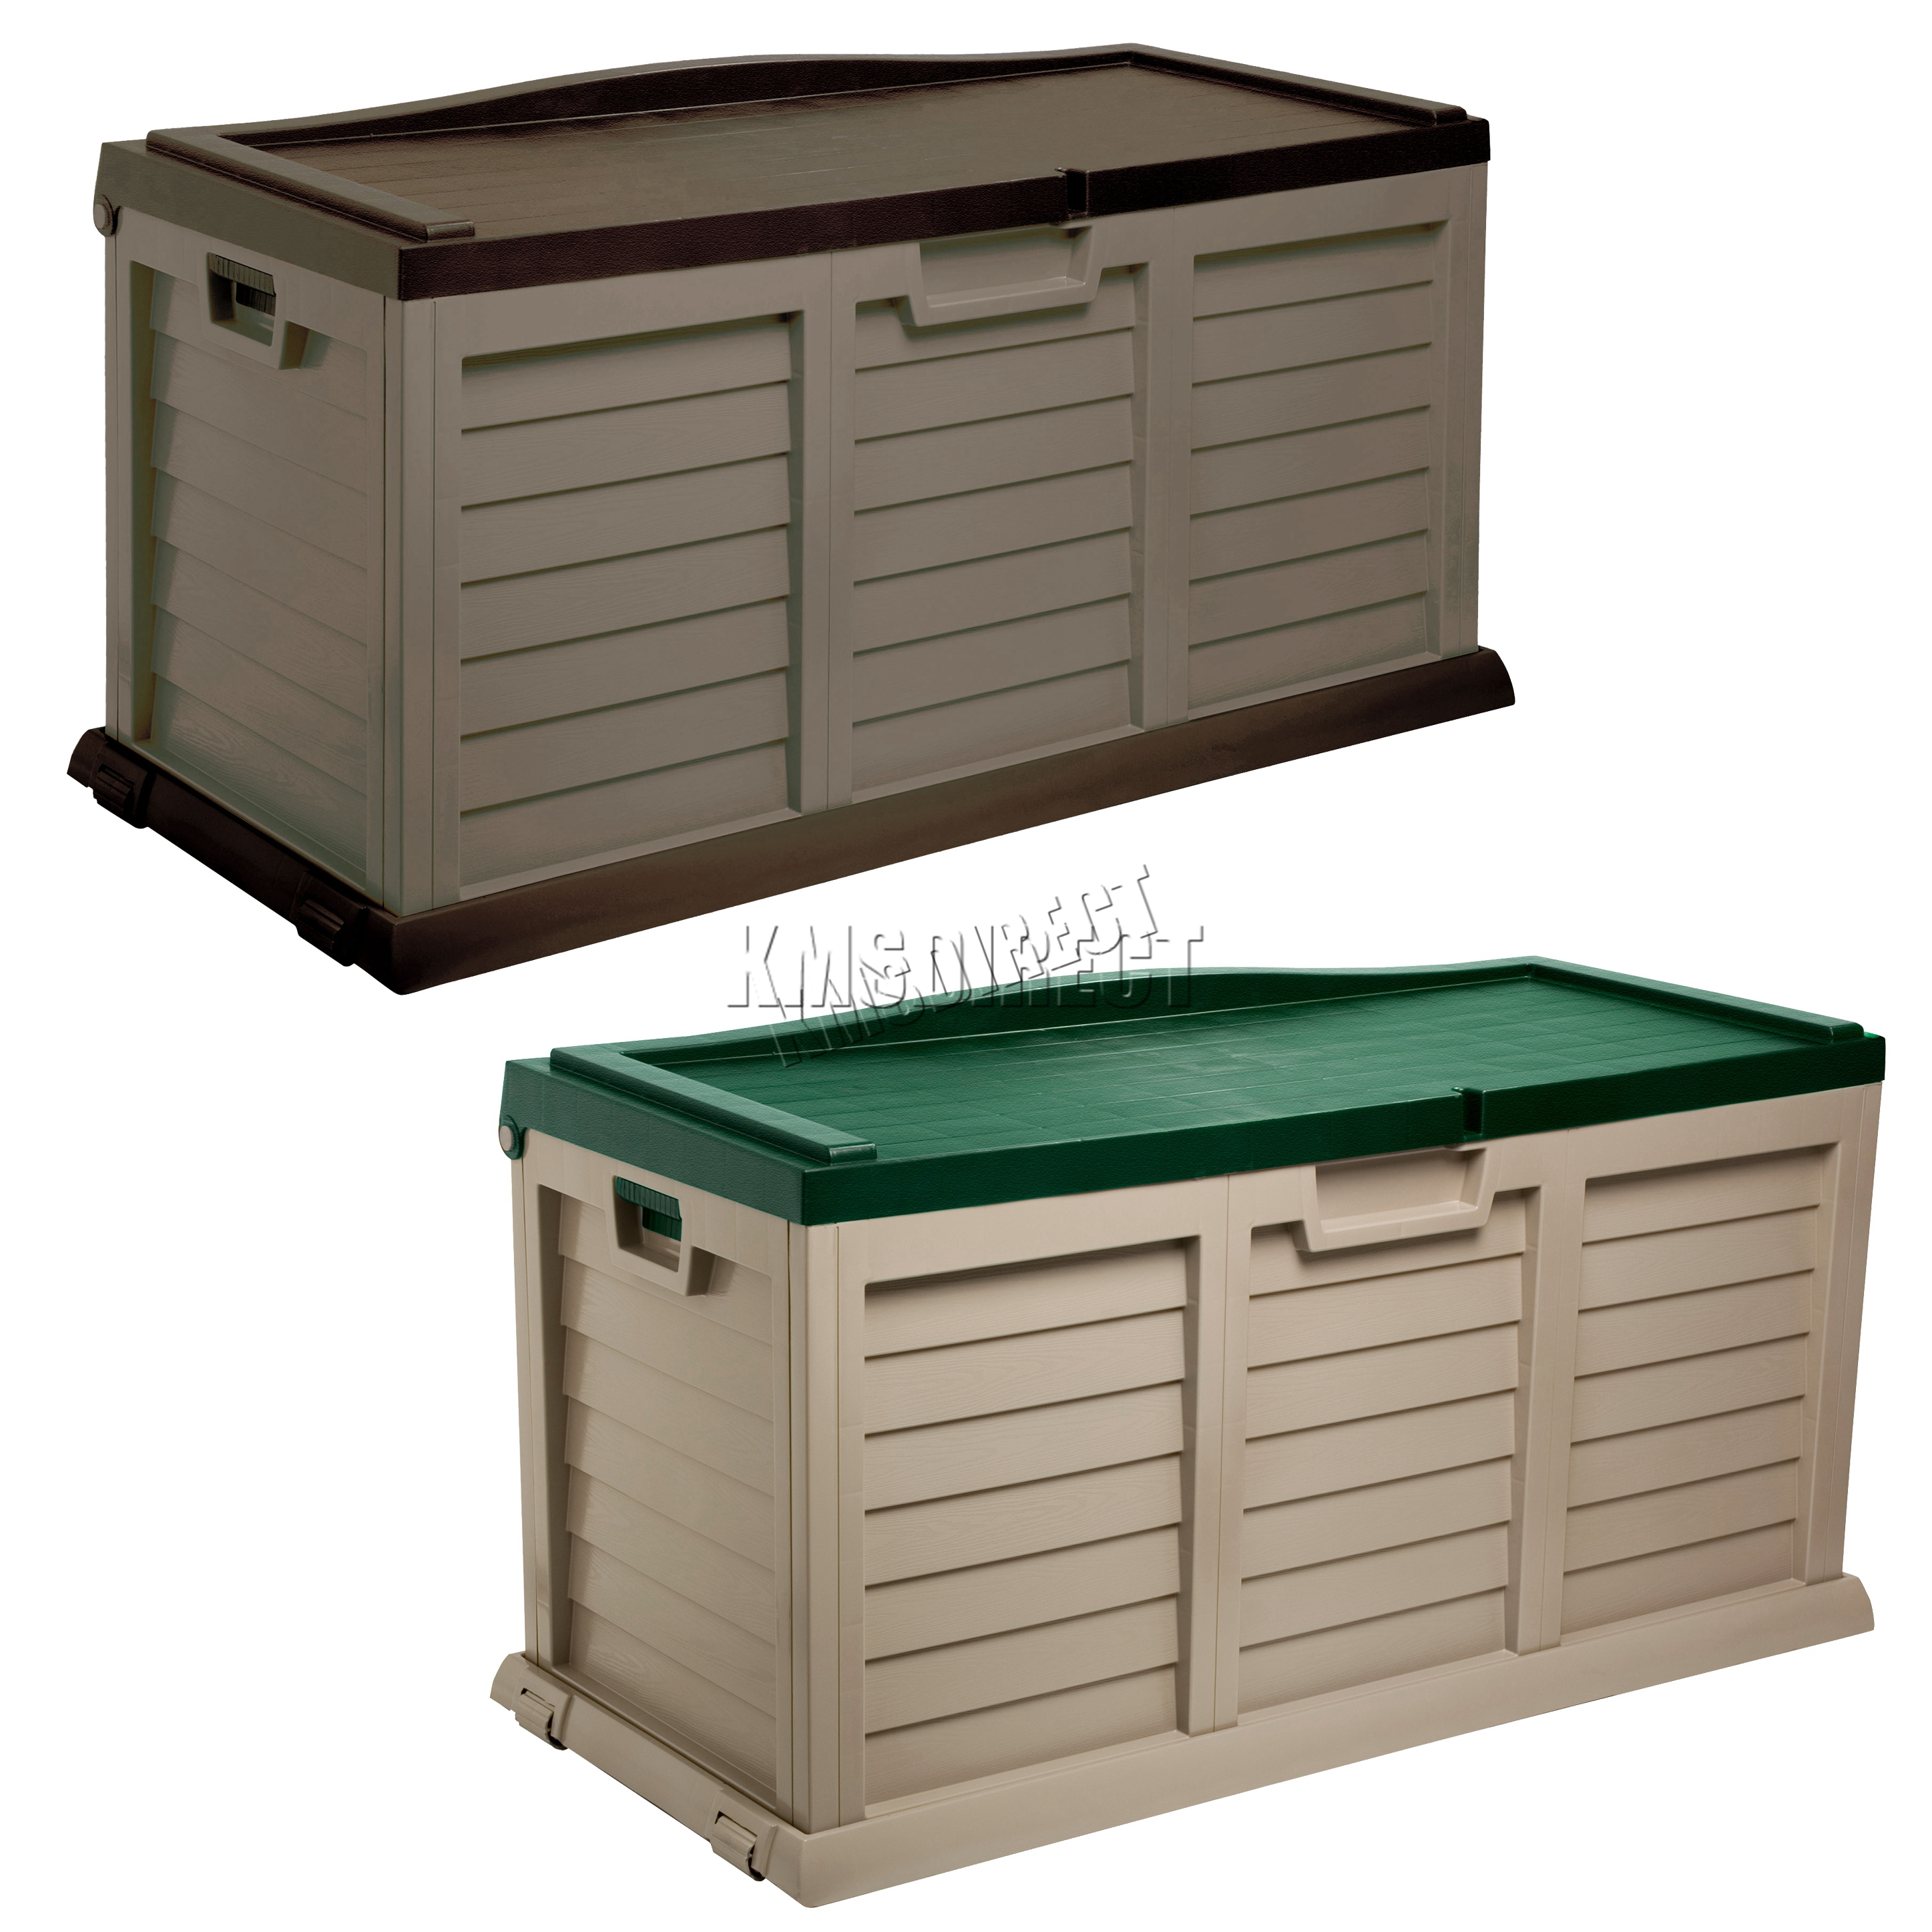 garden amazon plastic cu sjpl rubbermaid outdoor large ft storage sandalwood com roof onyx with shed dp